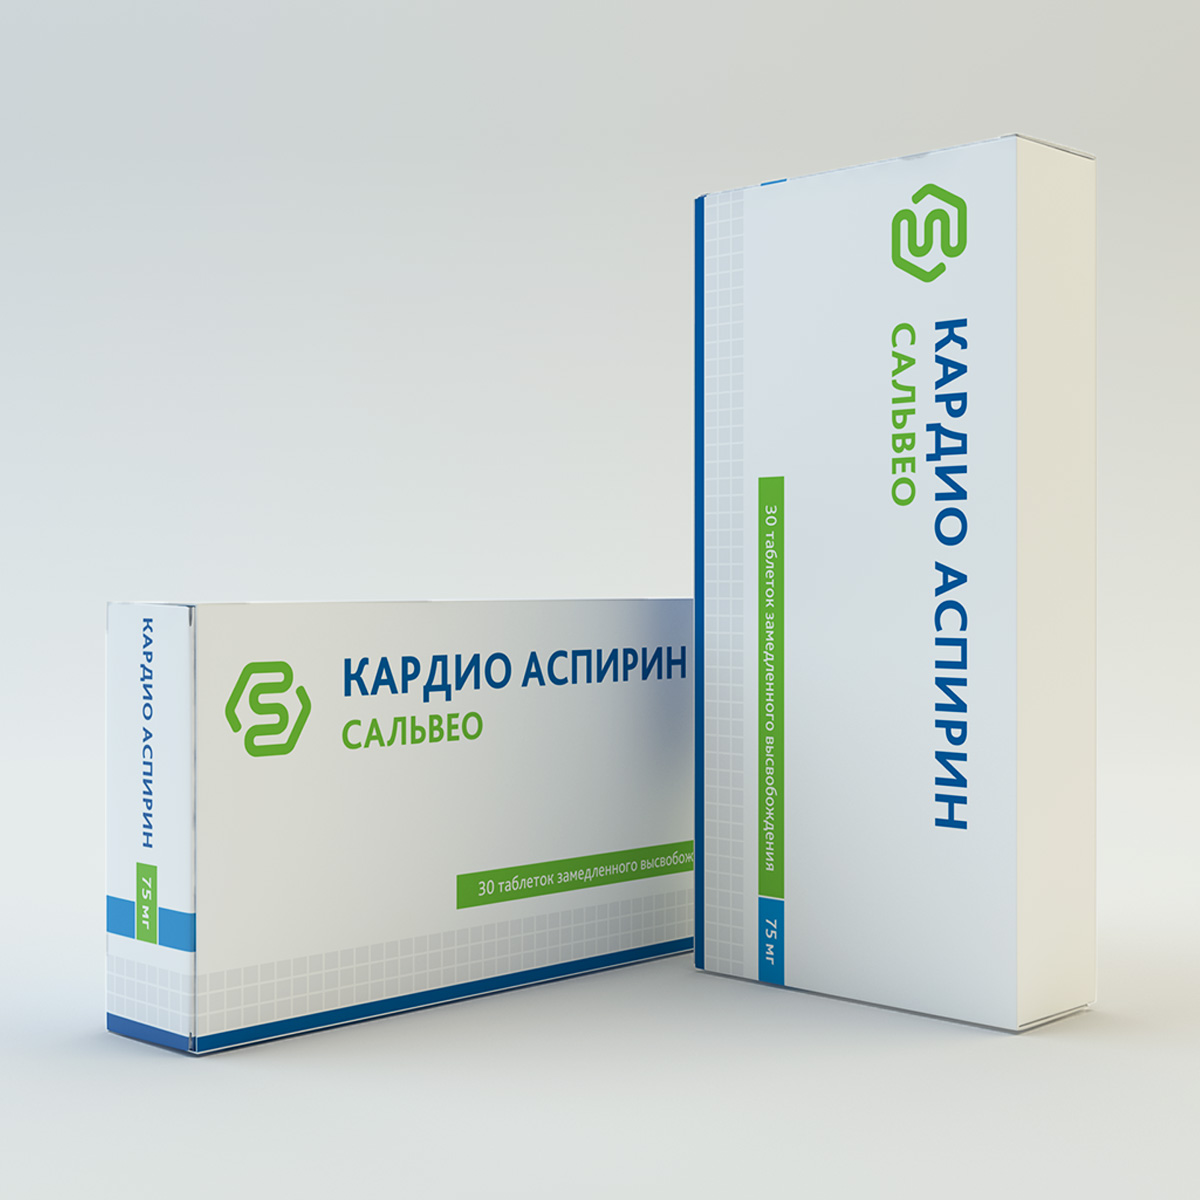 Some pharmaceutical packaging